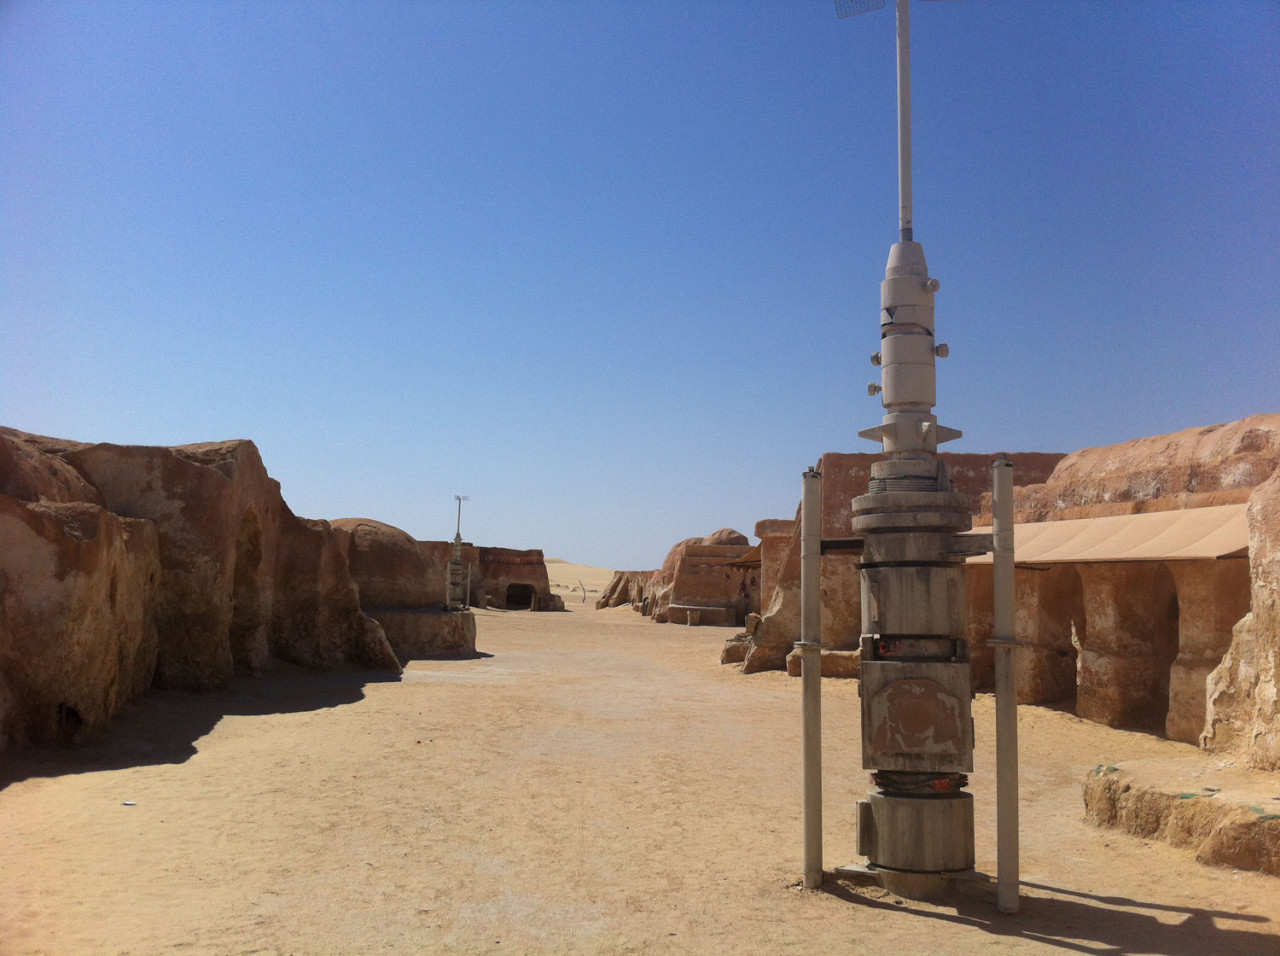 The Mos Espa set is one of very few Star Wars location in Tunisia you can visit on a regular tour